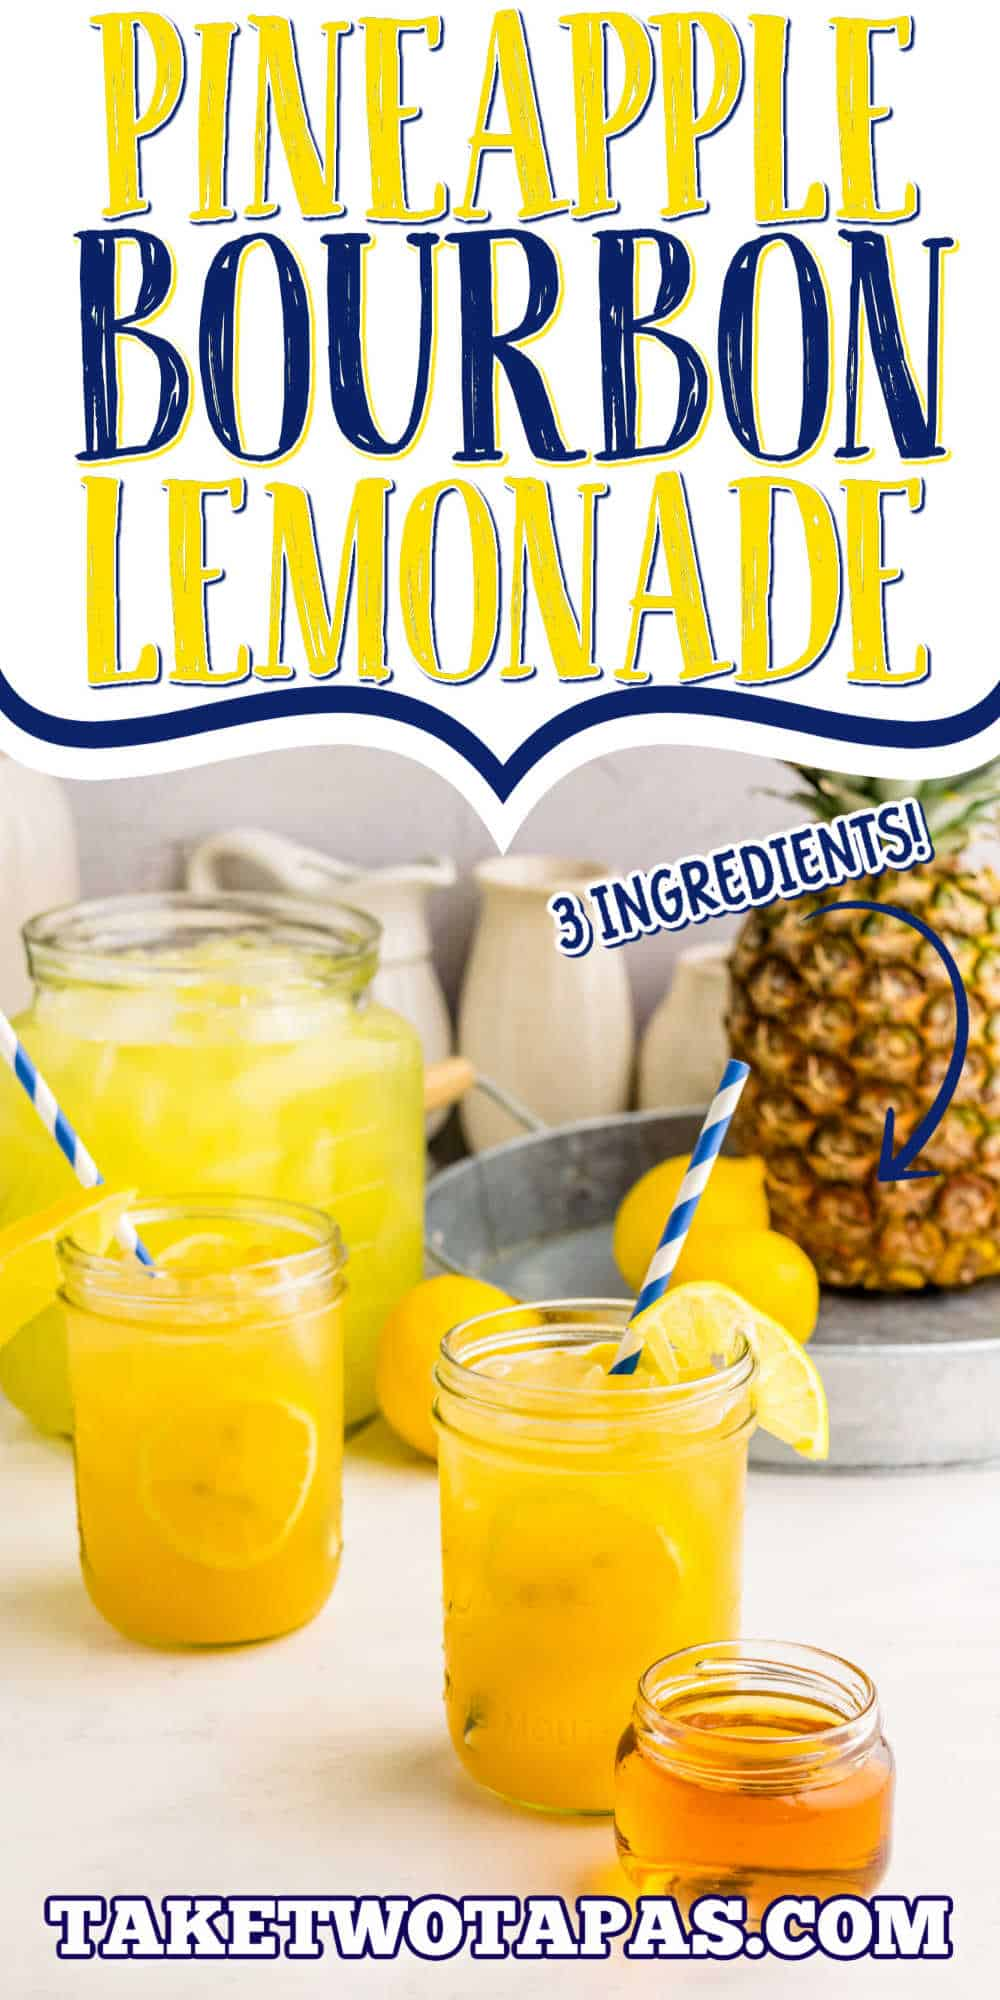 """pinterest image for cocktail with text """"pineapple bourbon lemonade"""""""